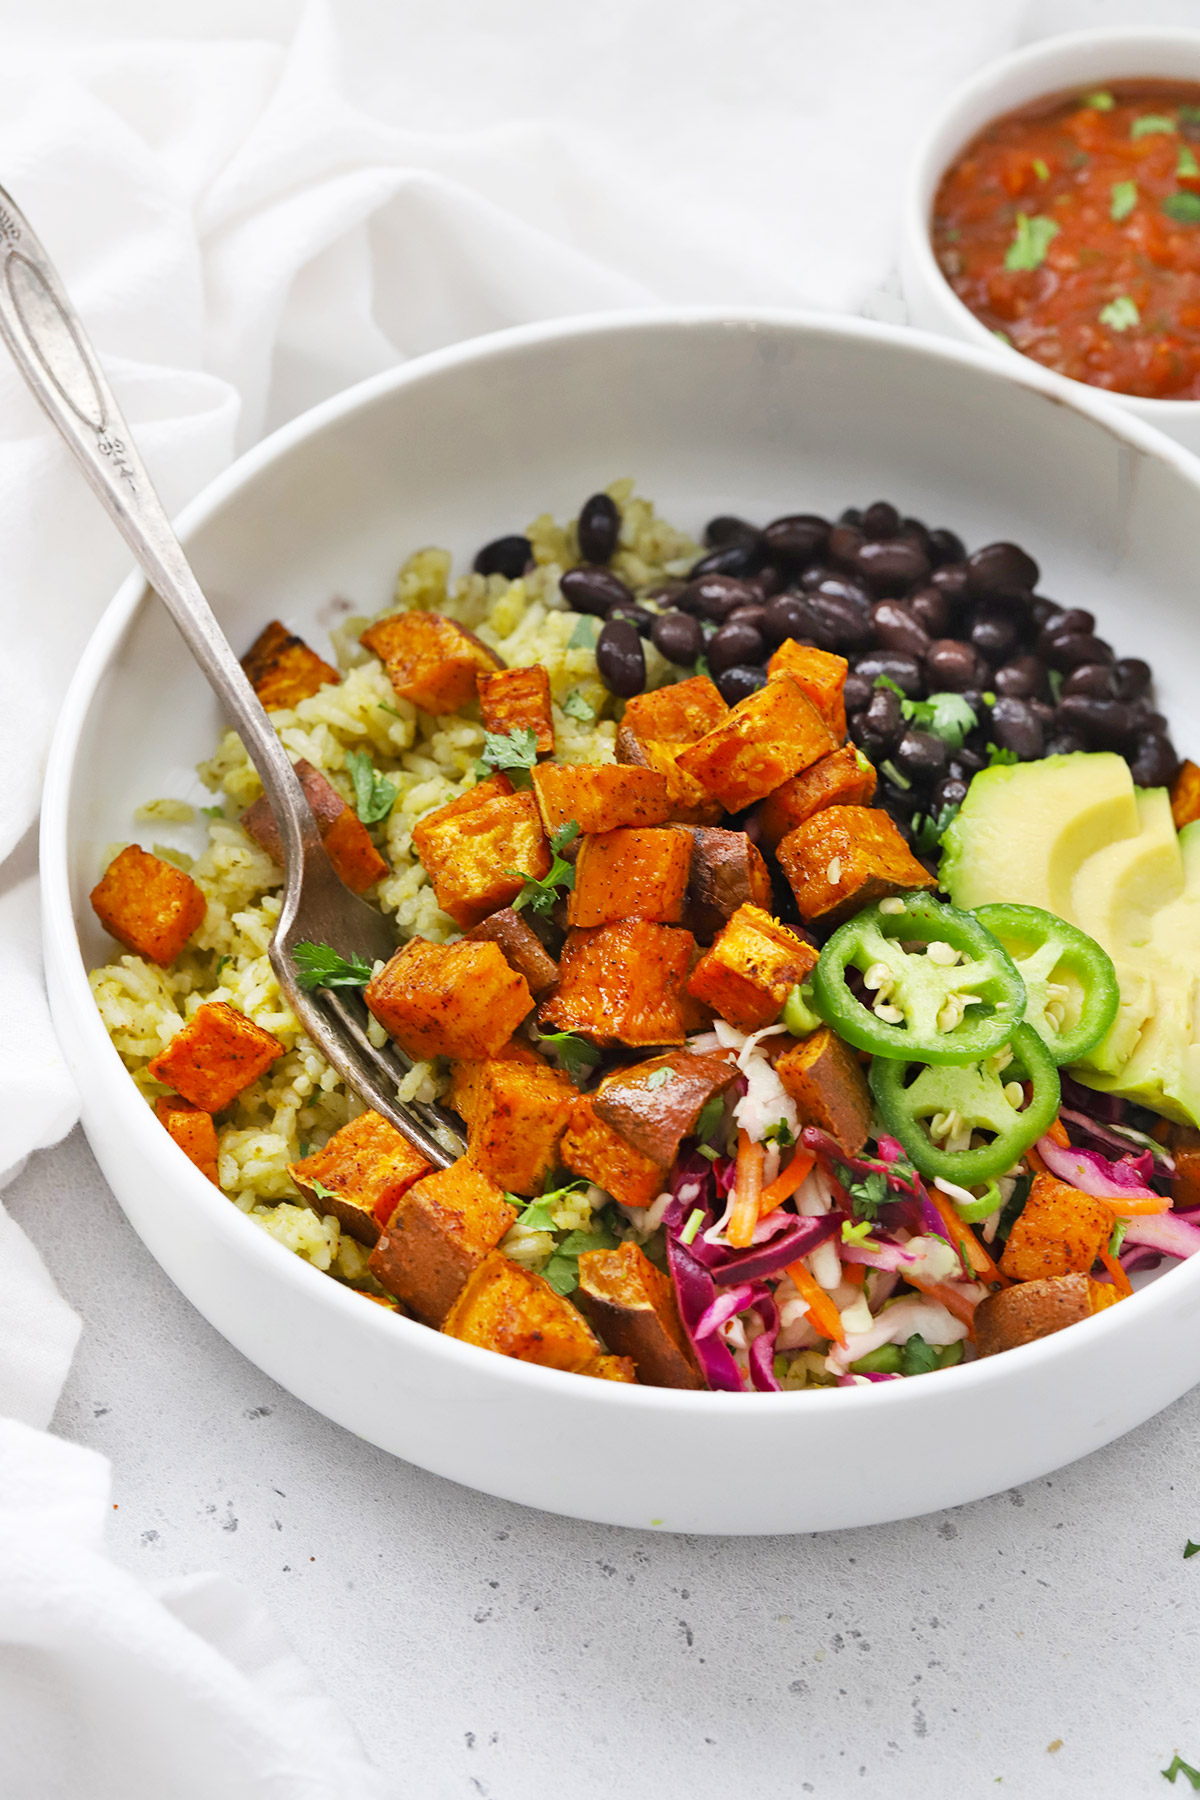 White bowl with chipotle sweet potatoes, black beans, green rice, slaw, and avocado.